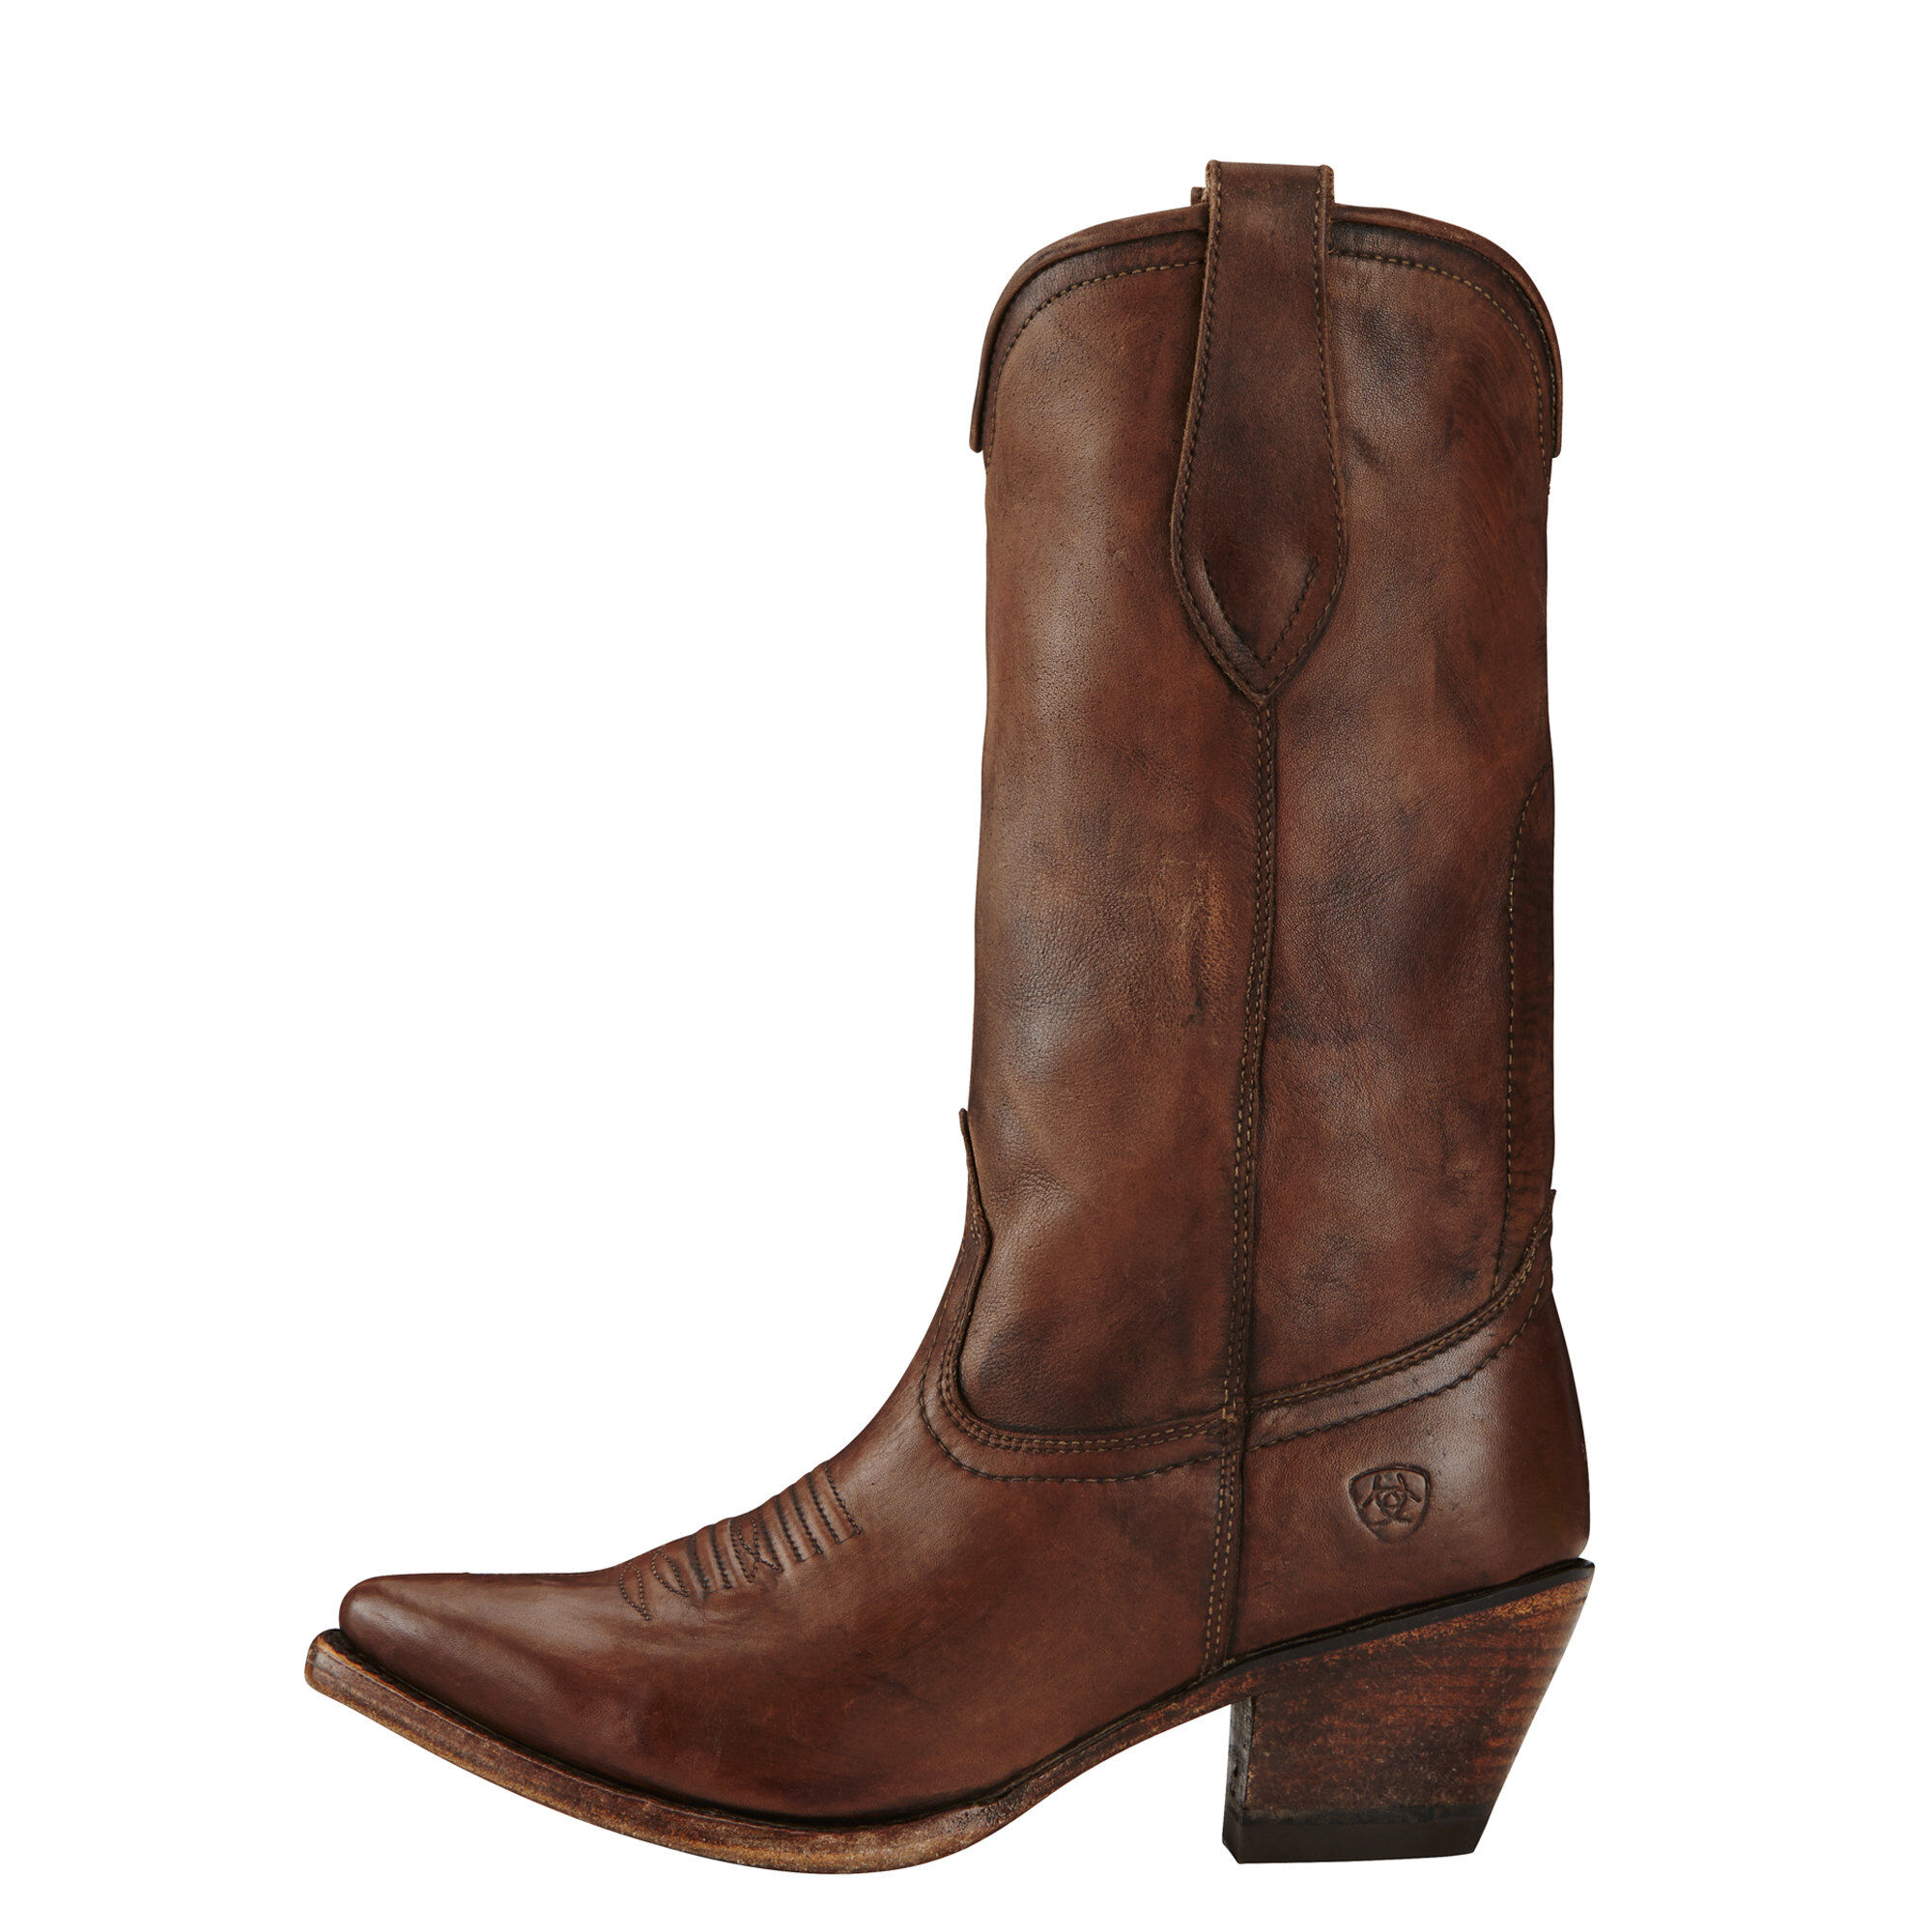 Ariat Josefina Mid Cowgirl Boot (Women's) T9wfcE1YBG